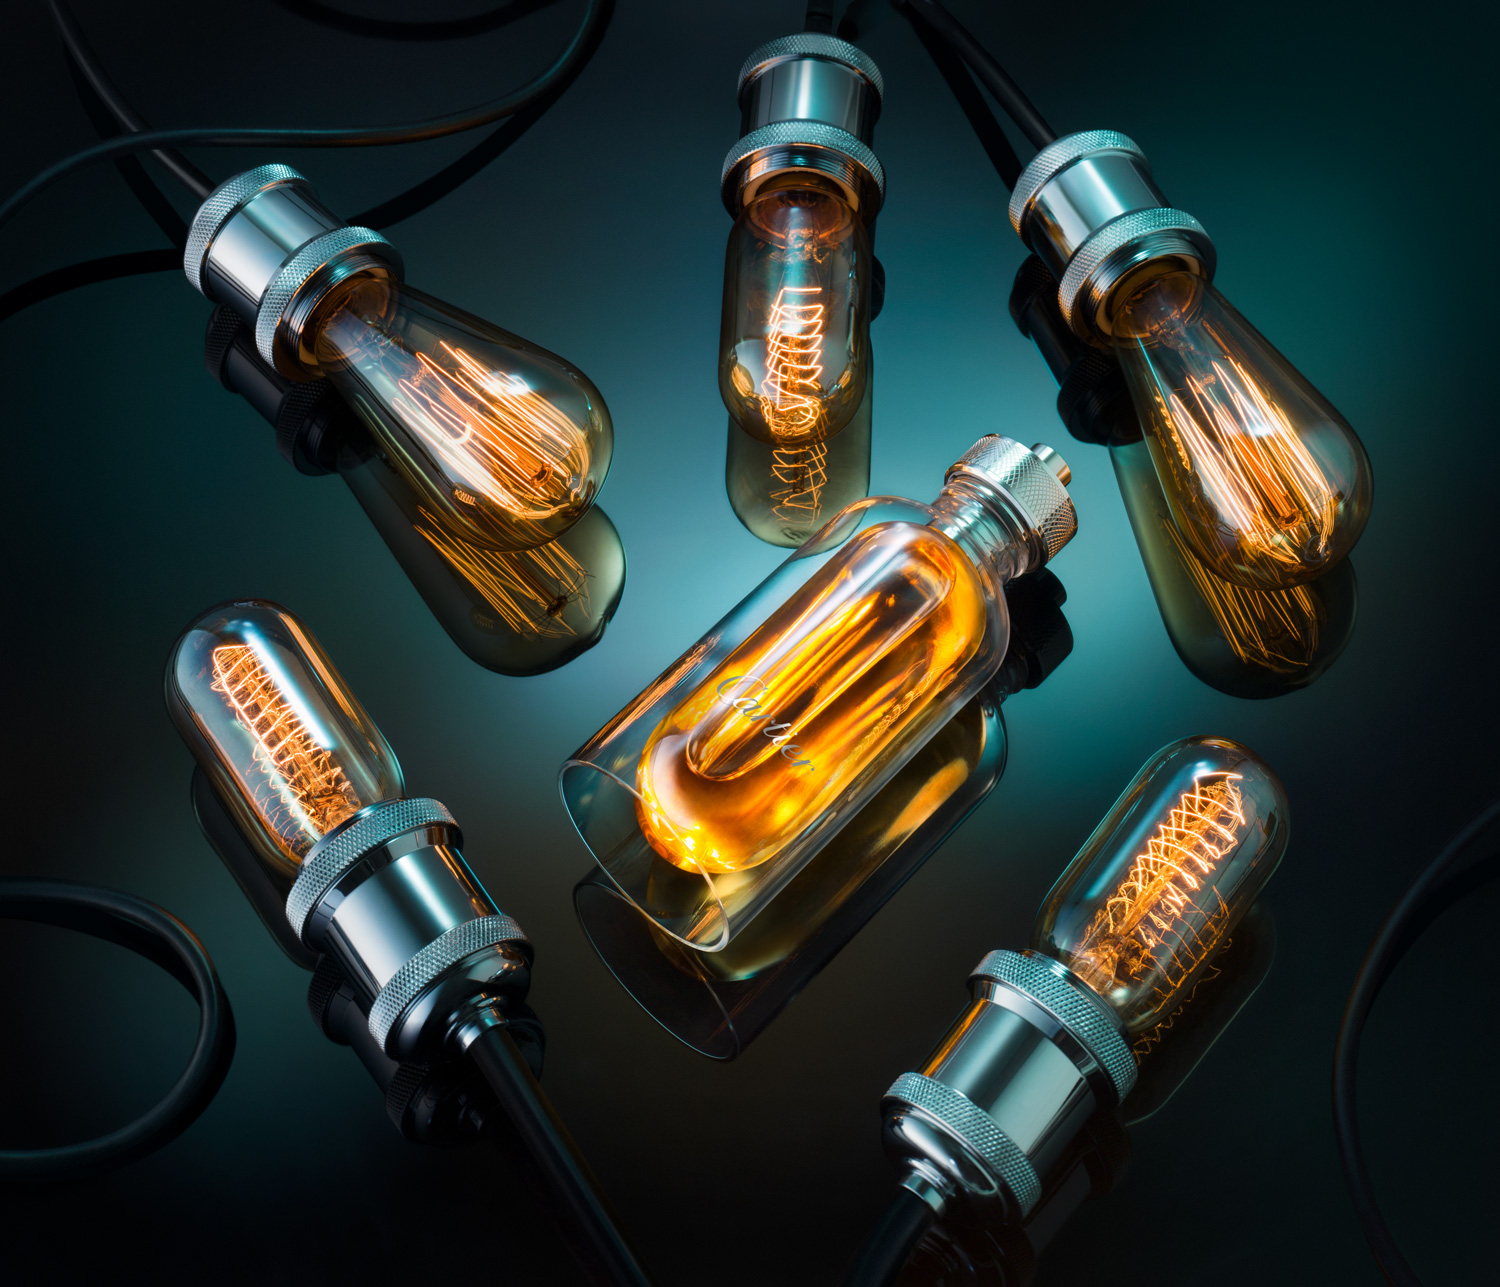 Still Life Photography Light Bulbs Cartier From Above - Lux Studio